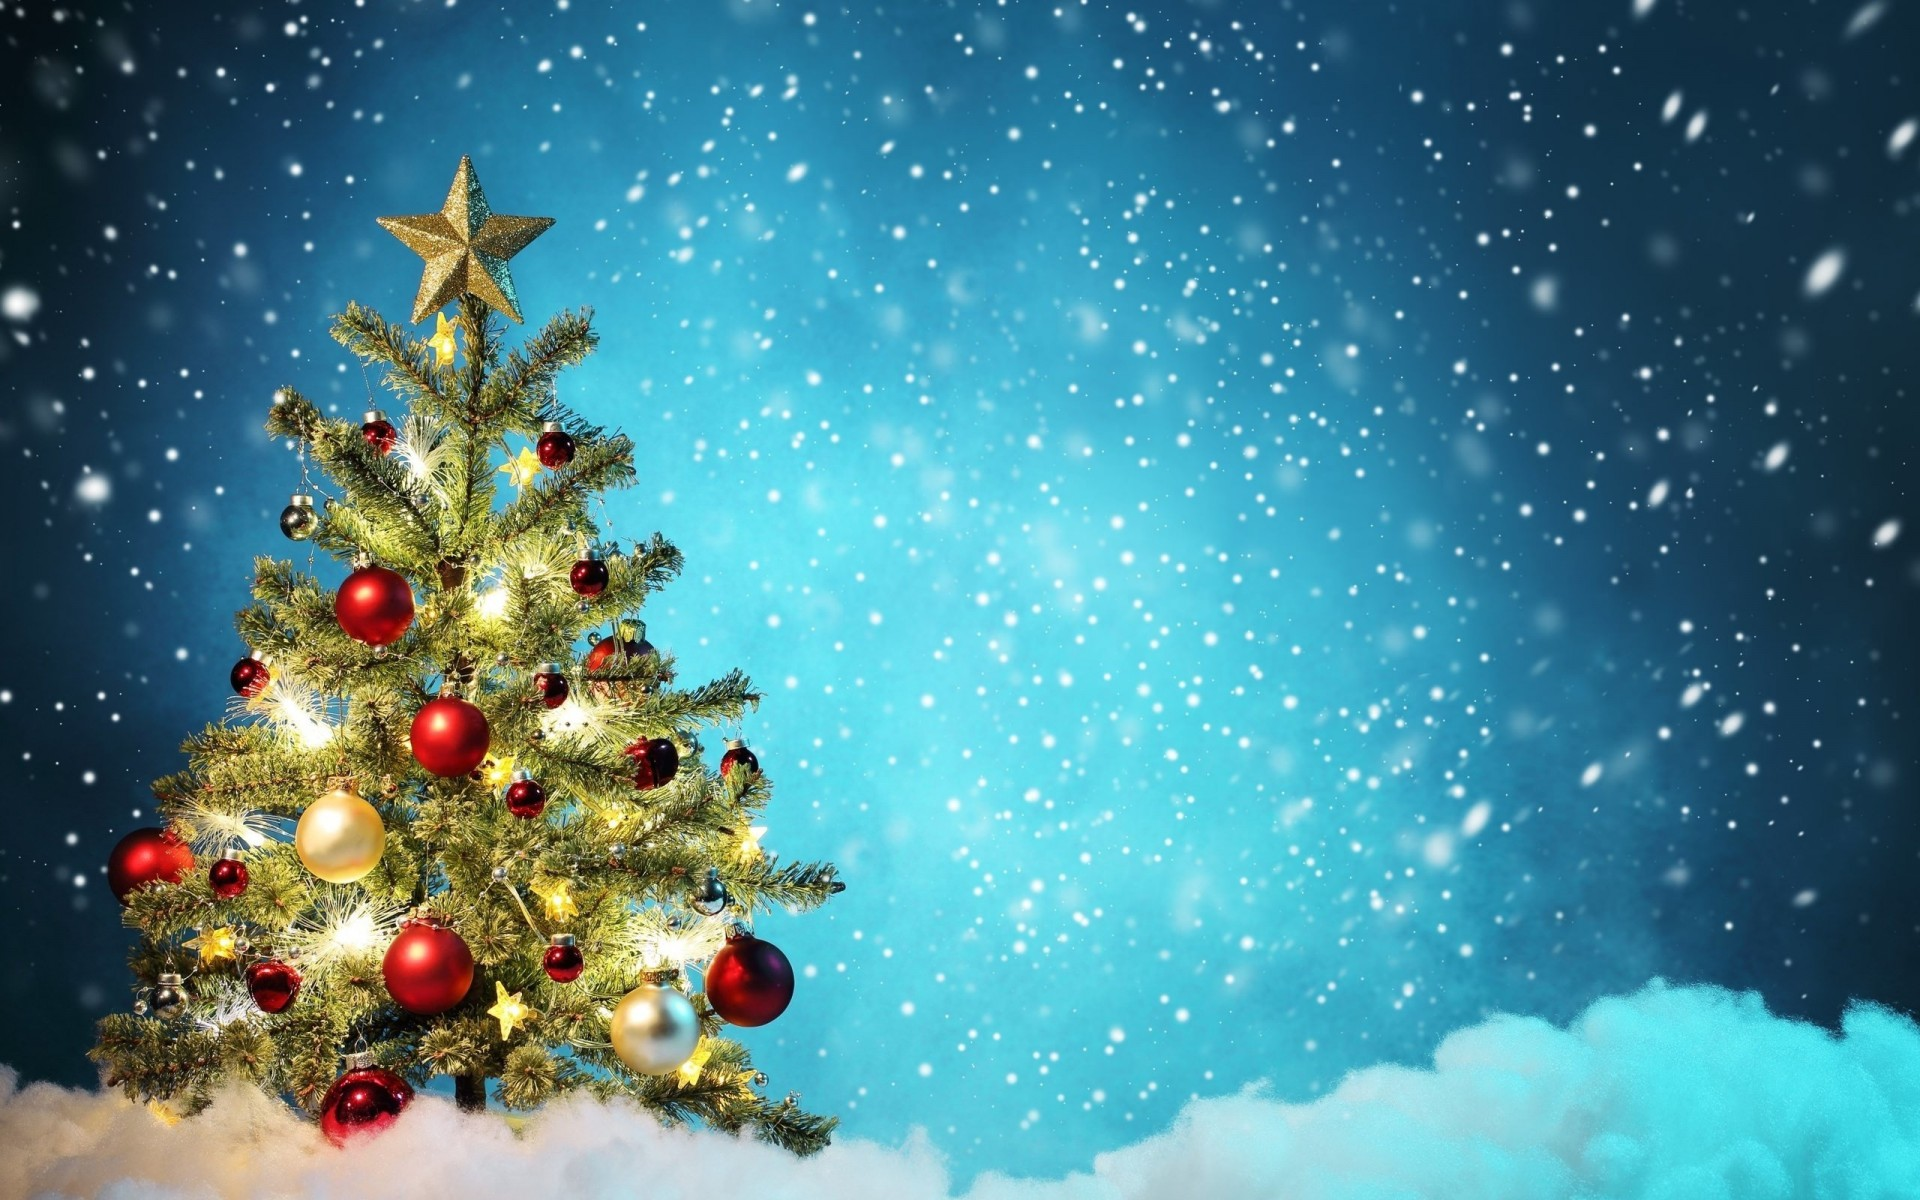 Beautiful Christmas Tree Wallpaper for Desktop 1920x1200